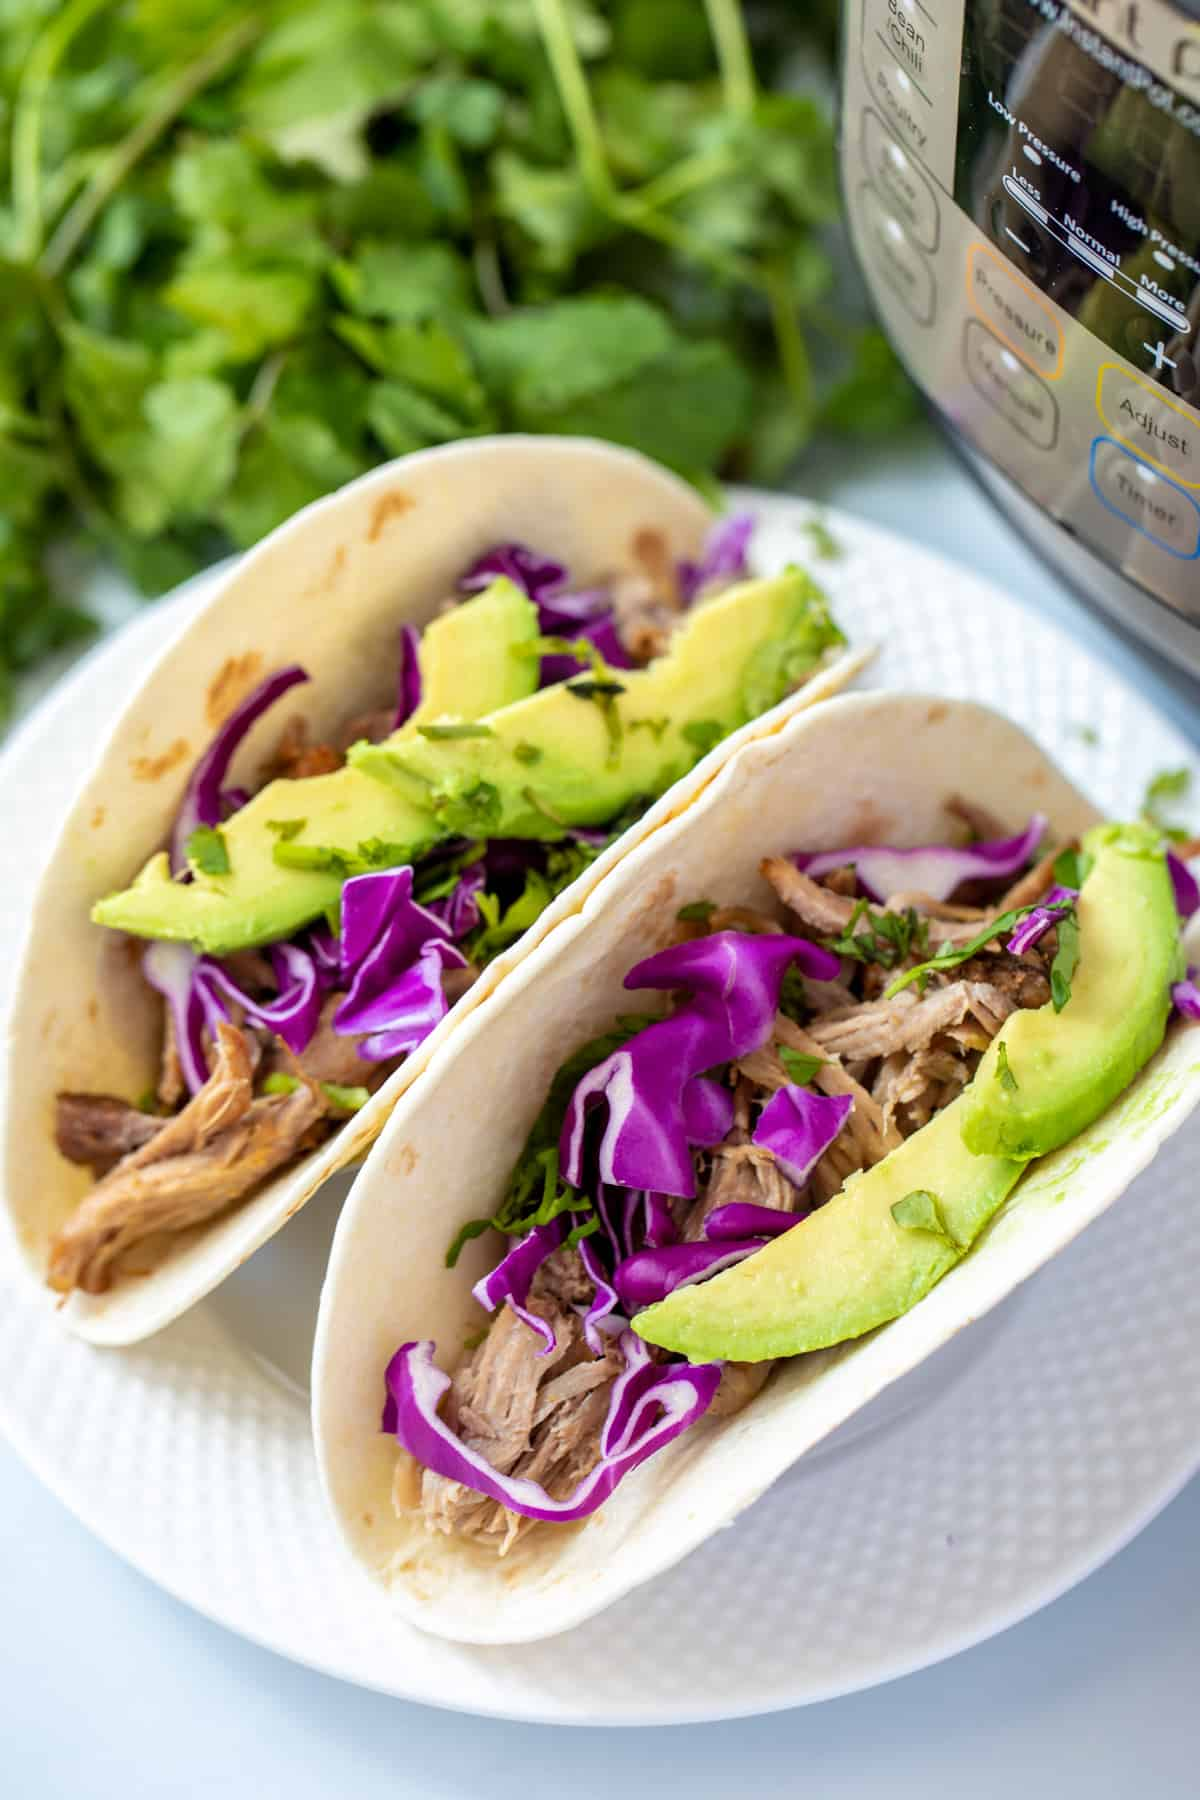 Pork carnita meat served on 2 flour tortillas topped with cabbage and avocado.